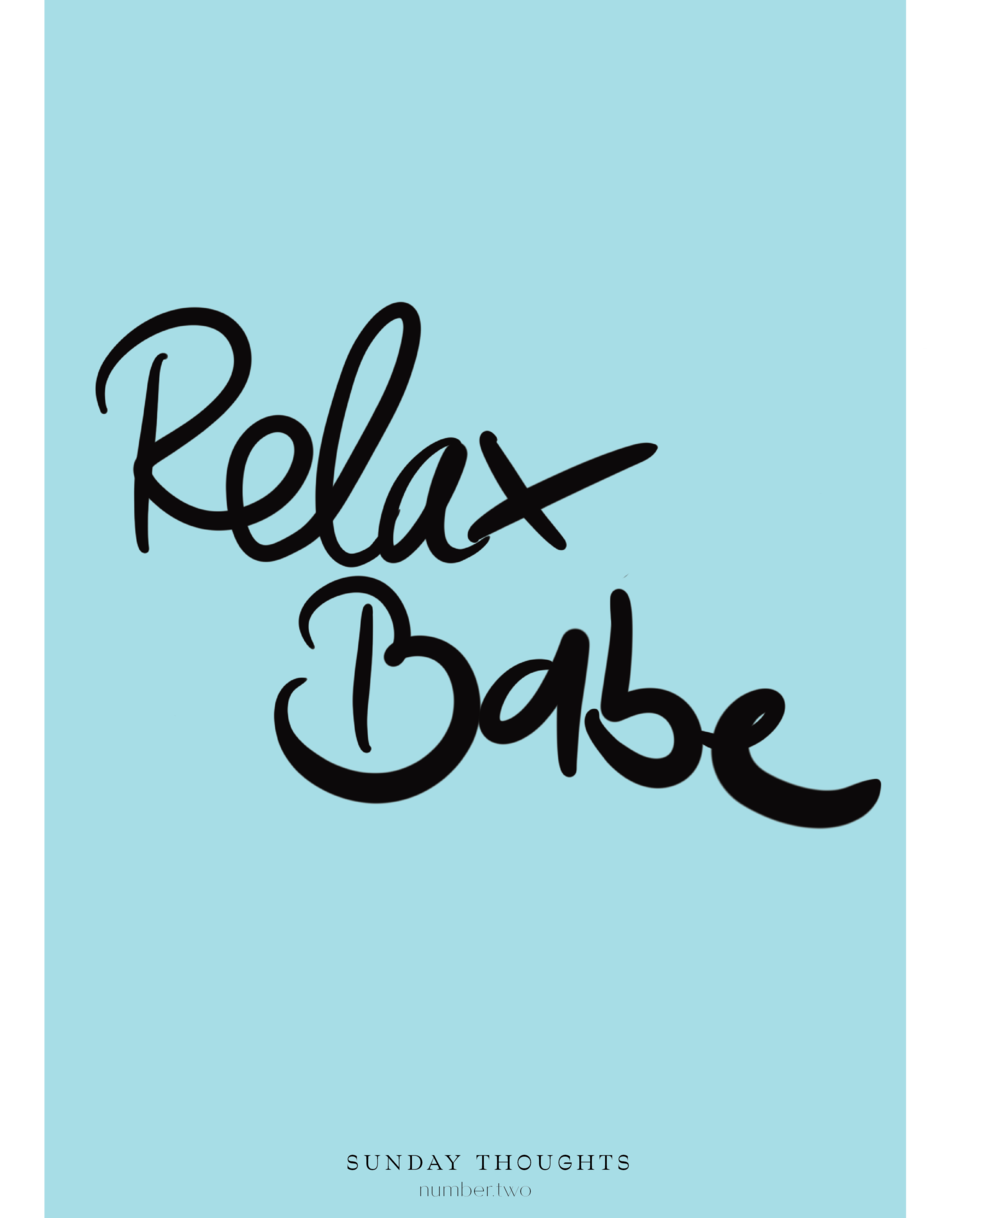 Sunday Thoughts No2 Relax Babe Phylleli